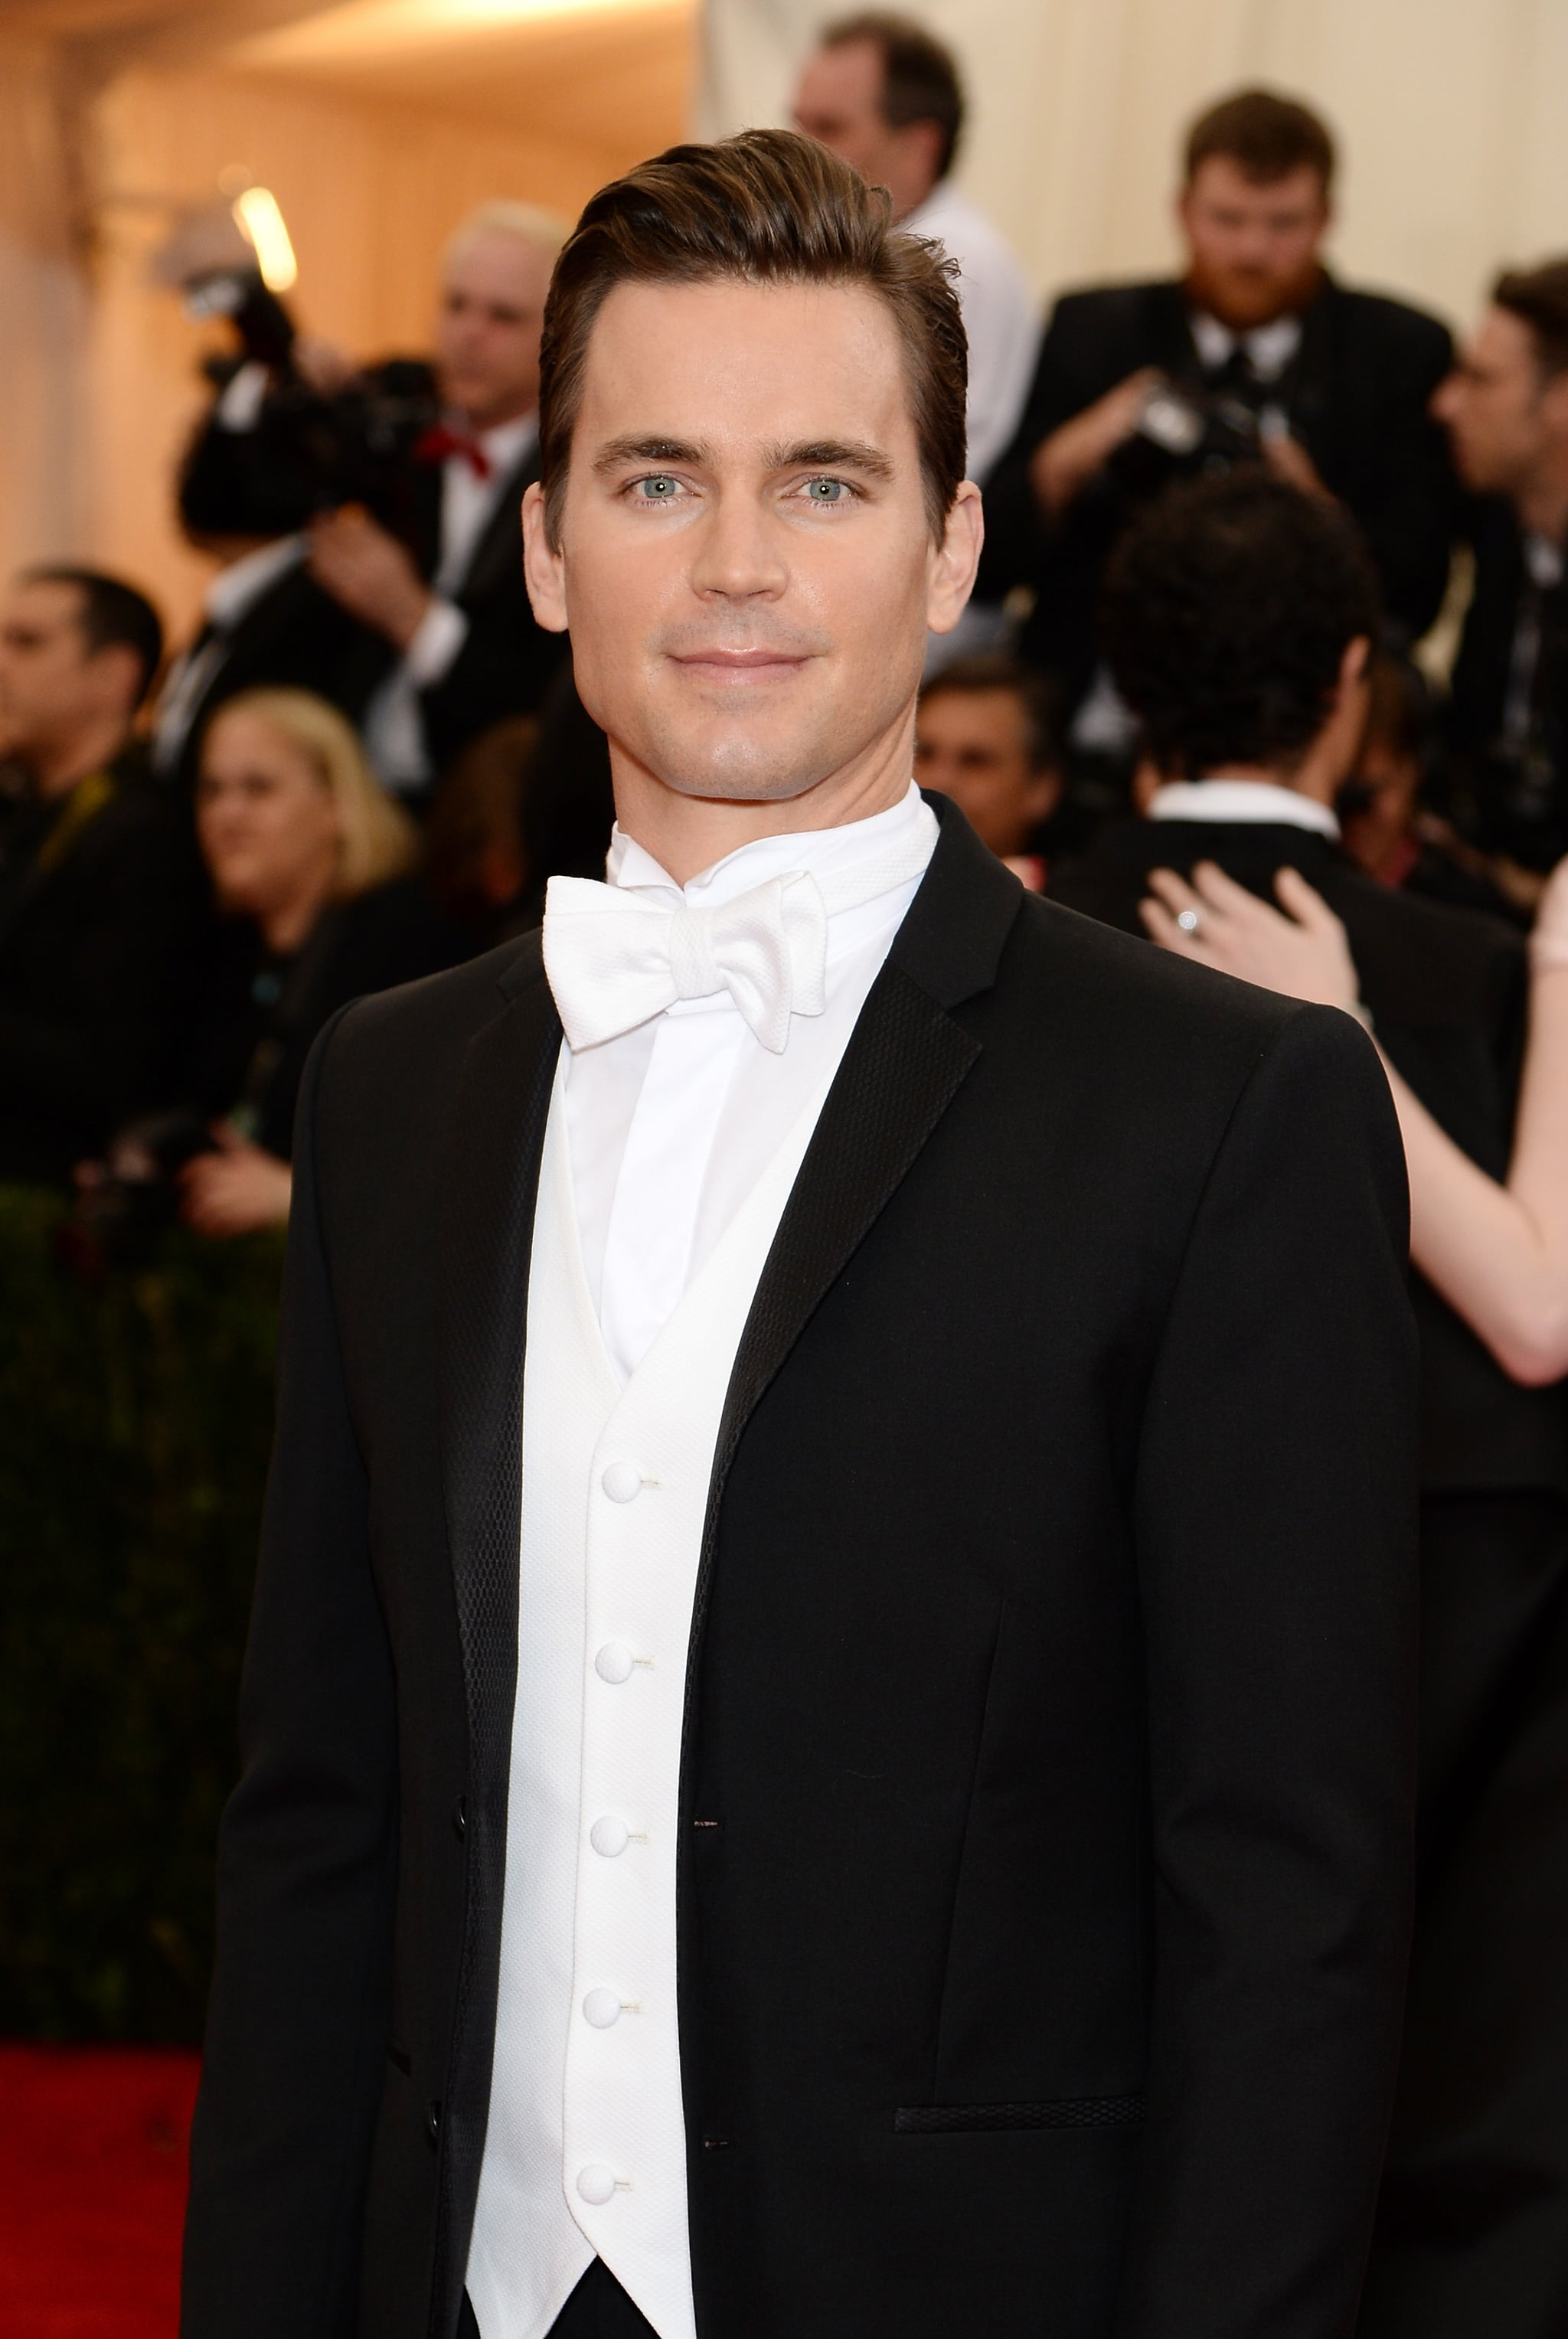 Matt Bomer looked like an actual Ken Doll in his tuxedo.